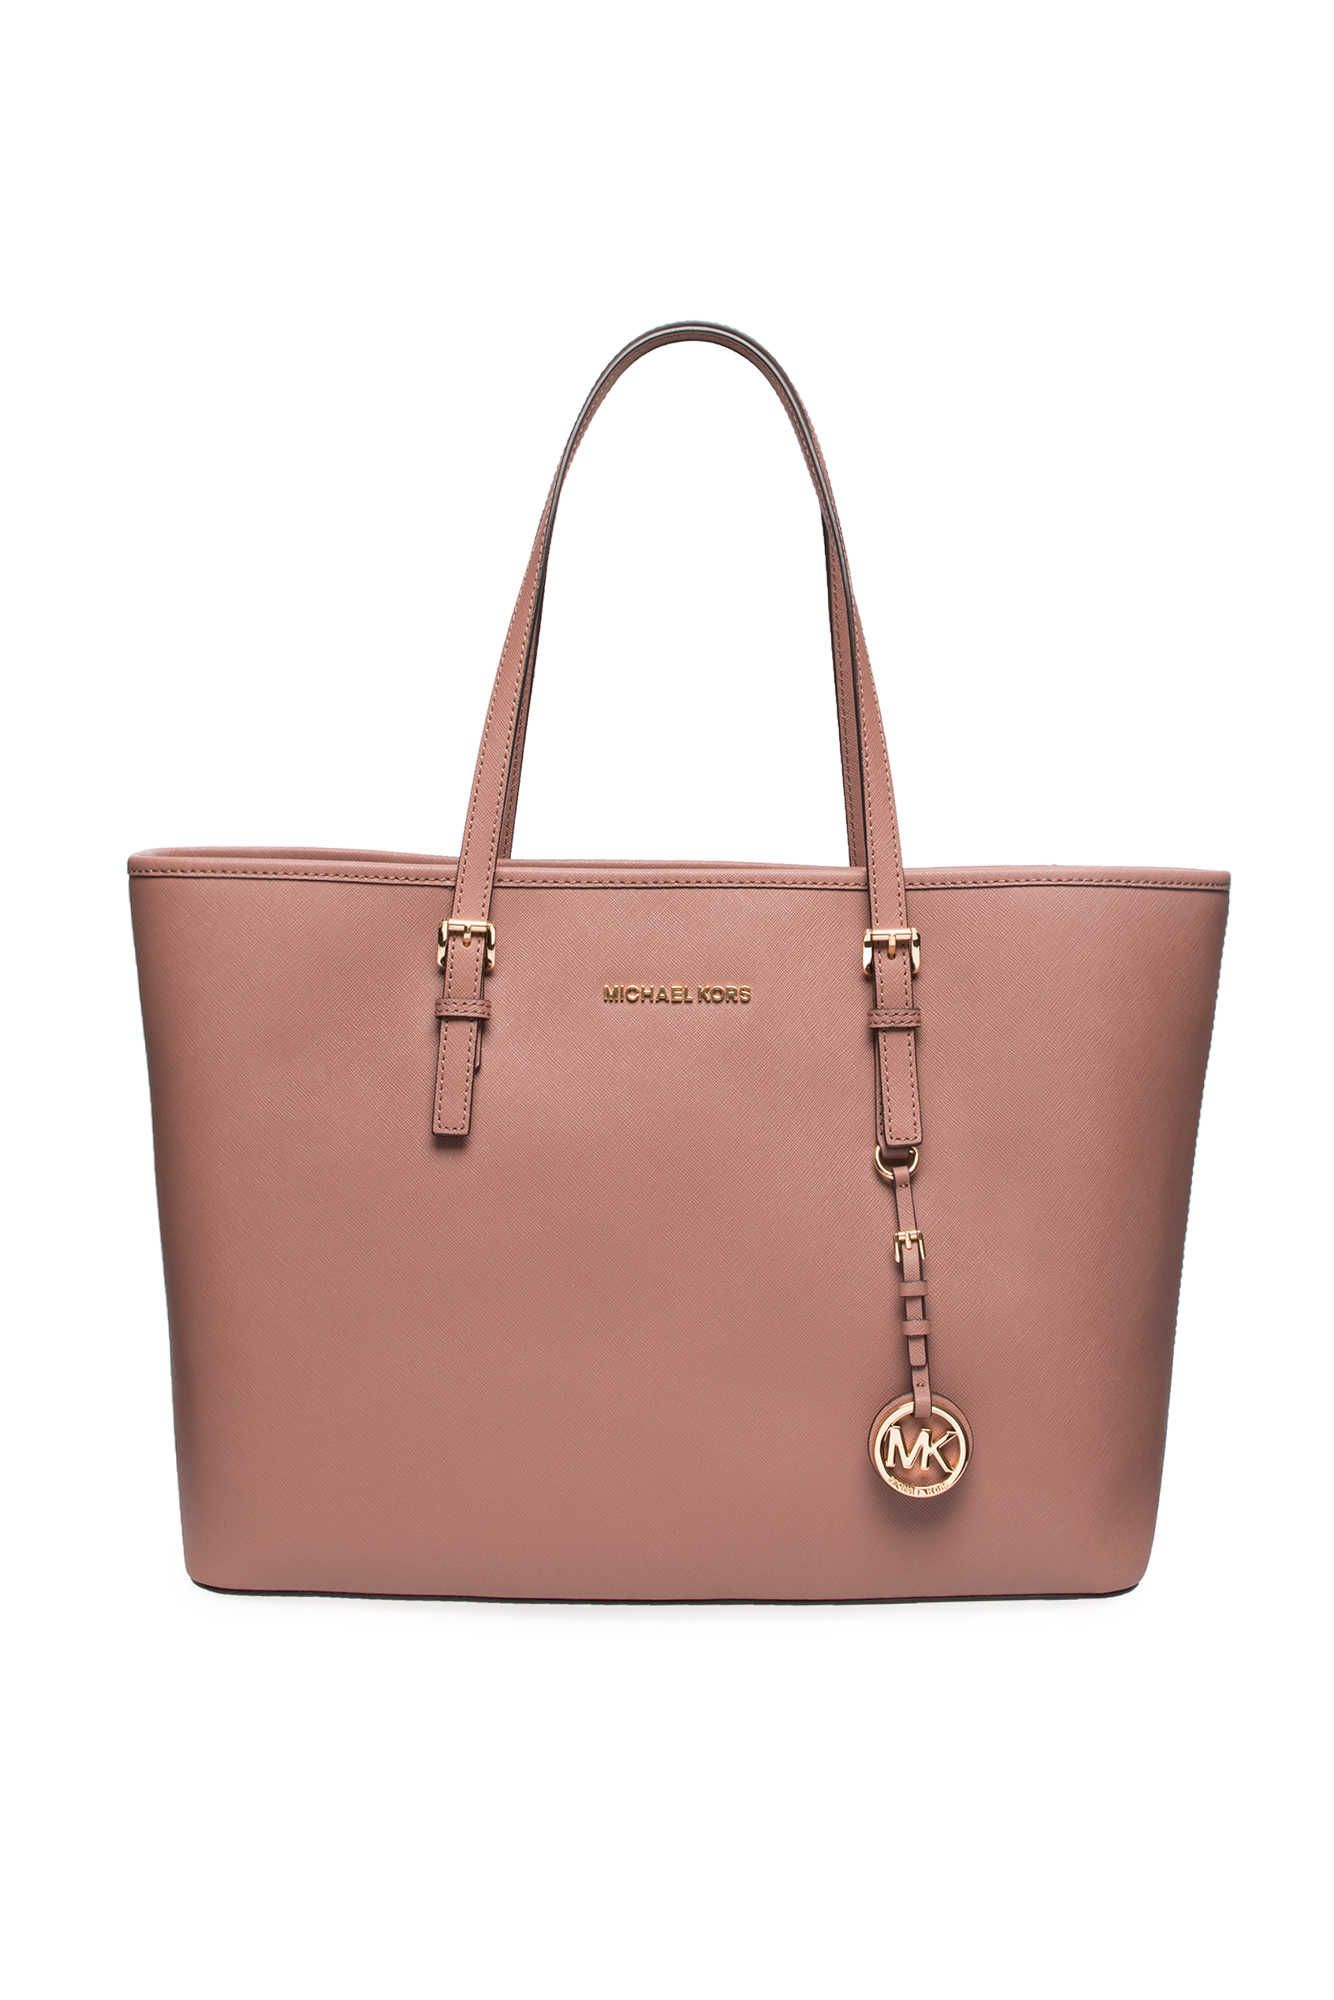 Väska Jet Set Travel MD Mult Funt Tote DUSTY ROSE GOLD - Michael - Michael  Kors - Designers - Raglady 529438b4a6e99